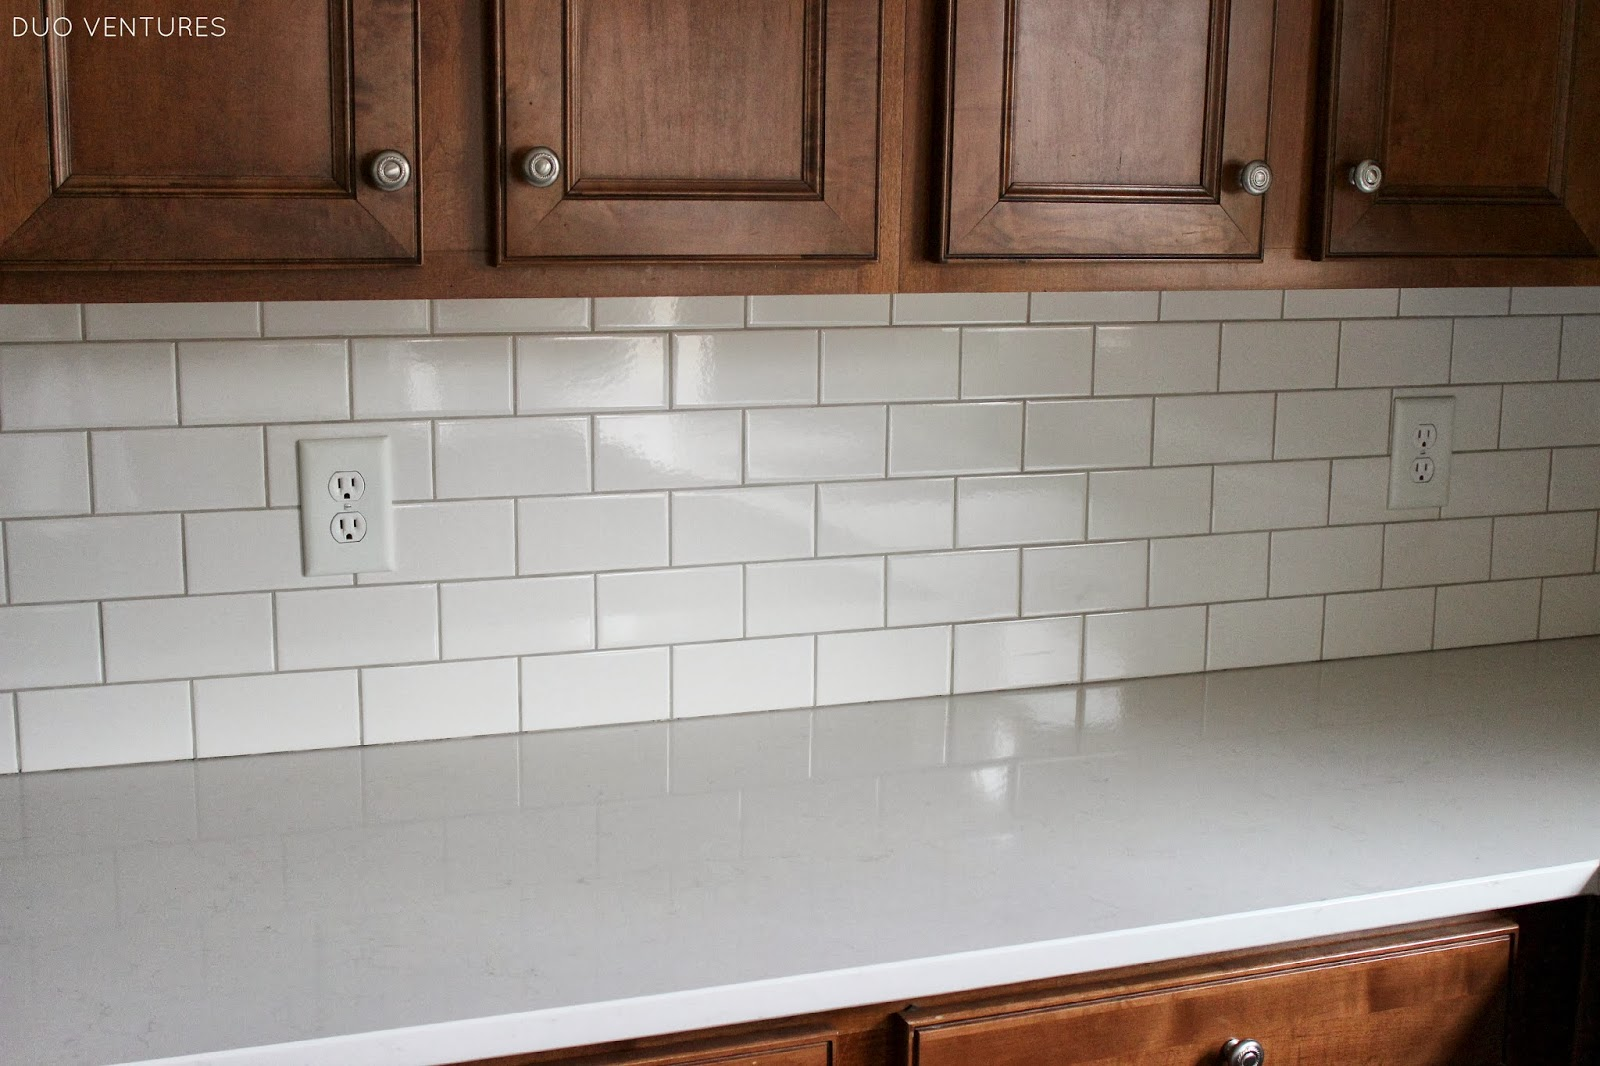 Grouting Kitchen Backsplash Cool Duo Ventures Kitchen Update Grouting & Caulking Subway Tile . 2017